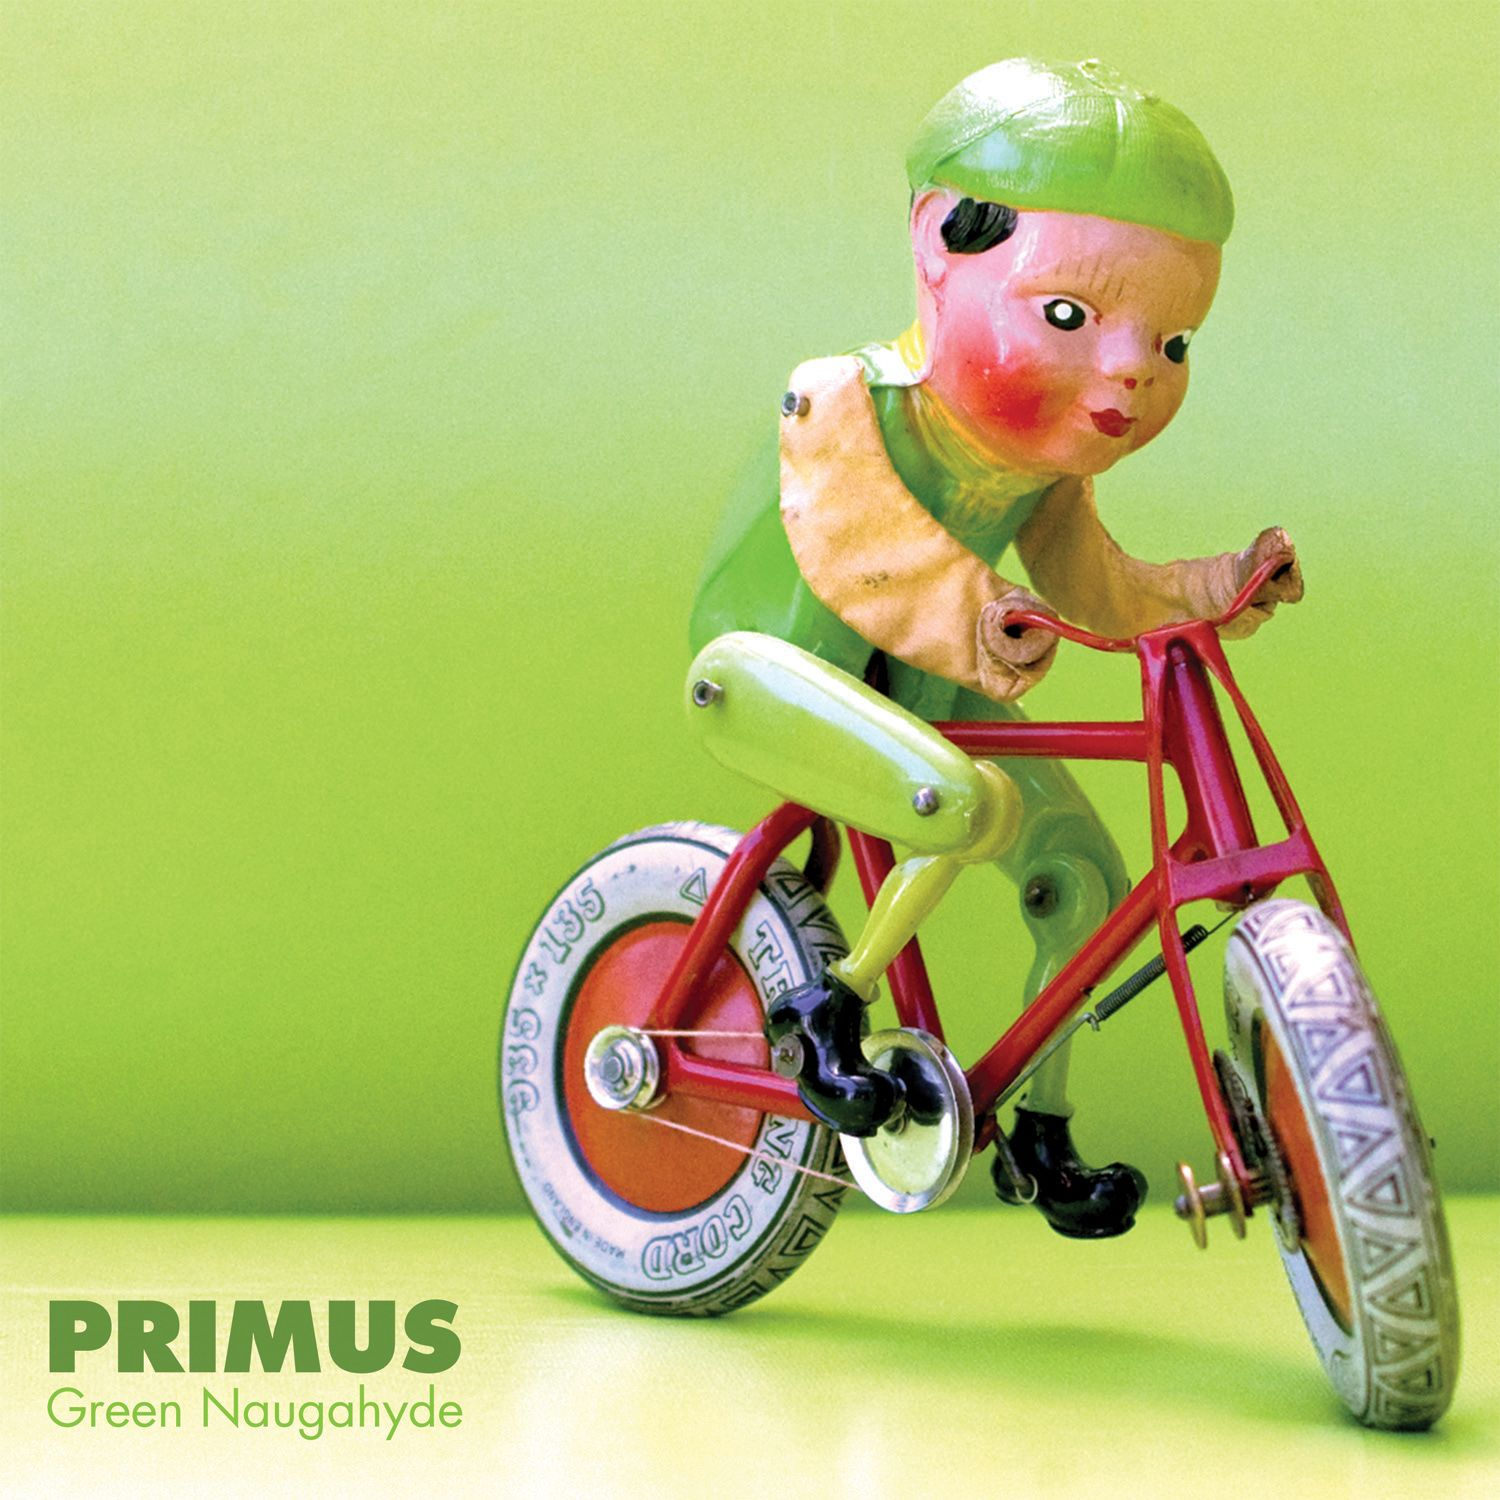 green naugahyde Les Claypool Breaks Down the Entire Primus Discography